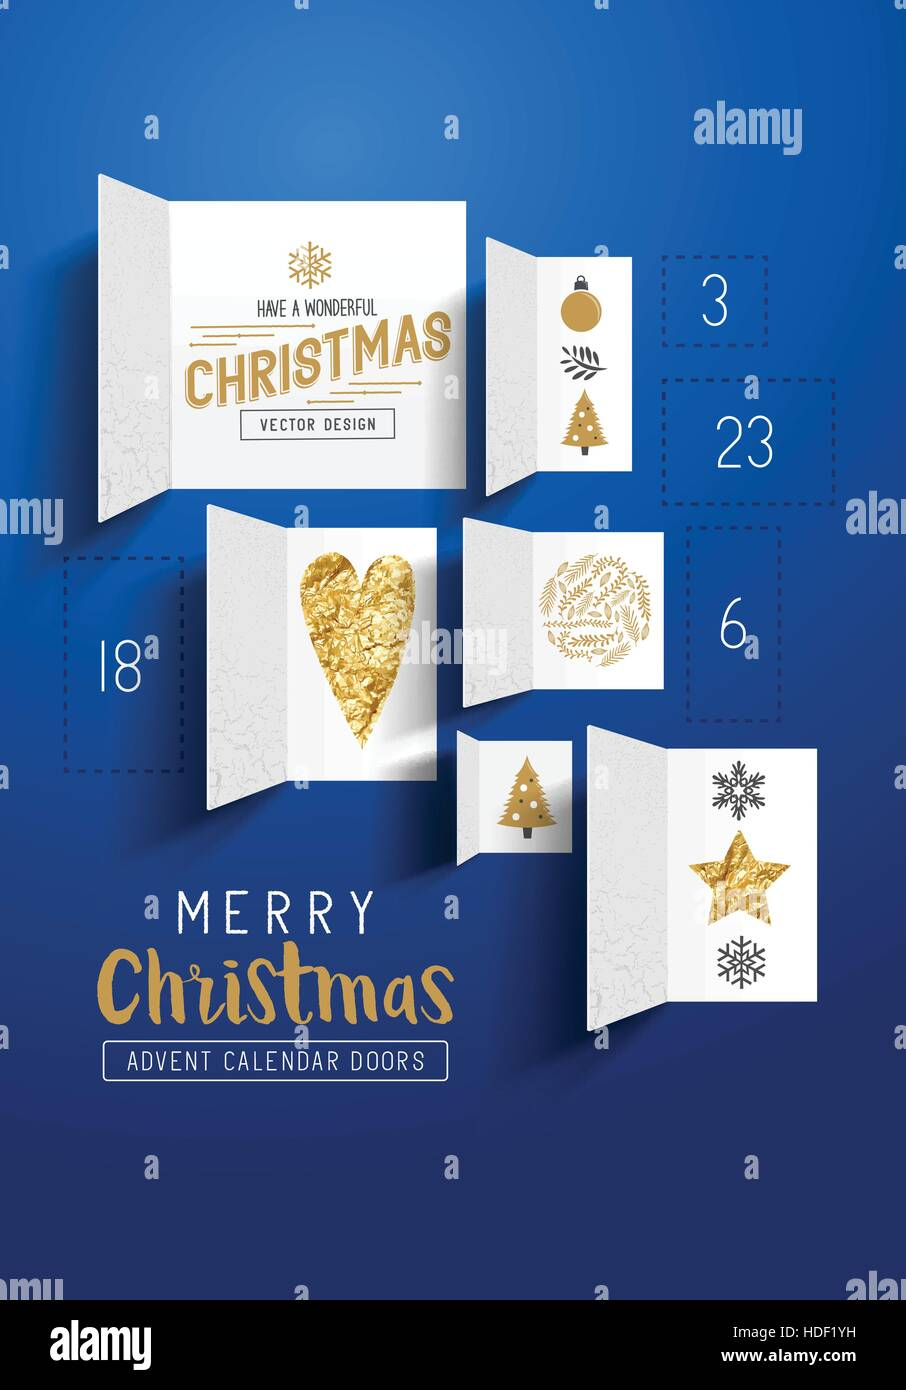 Christmas advent calendar doors open to reveal festive images. Vector illustration - Stock Image